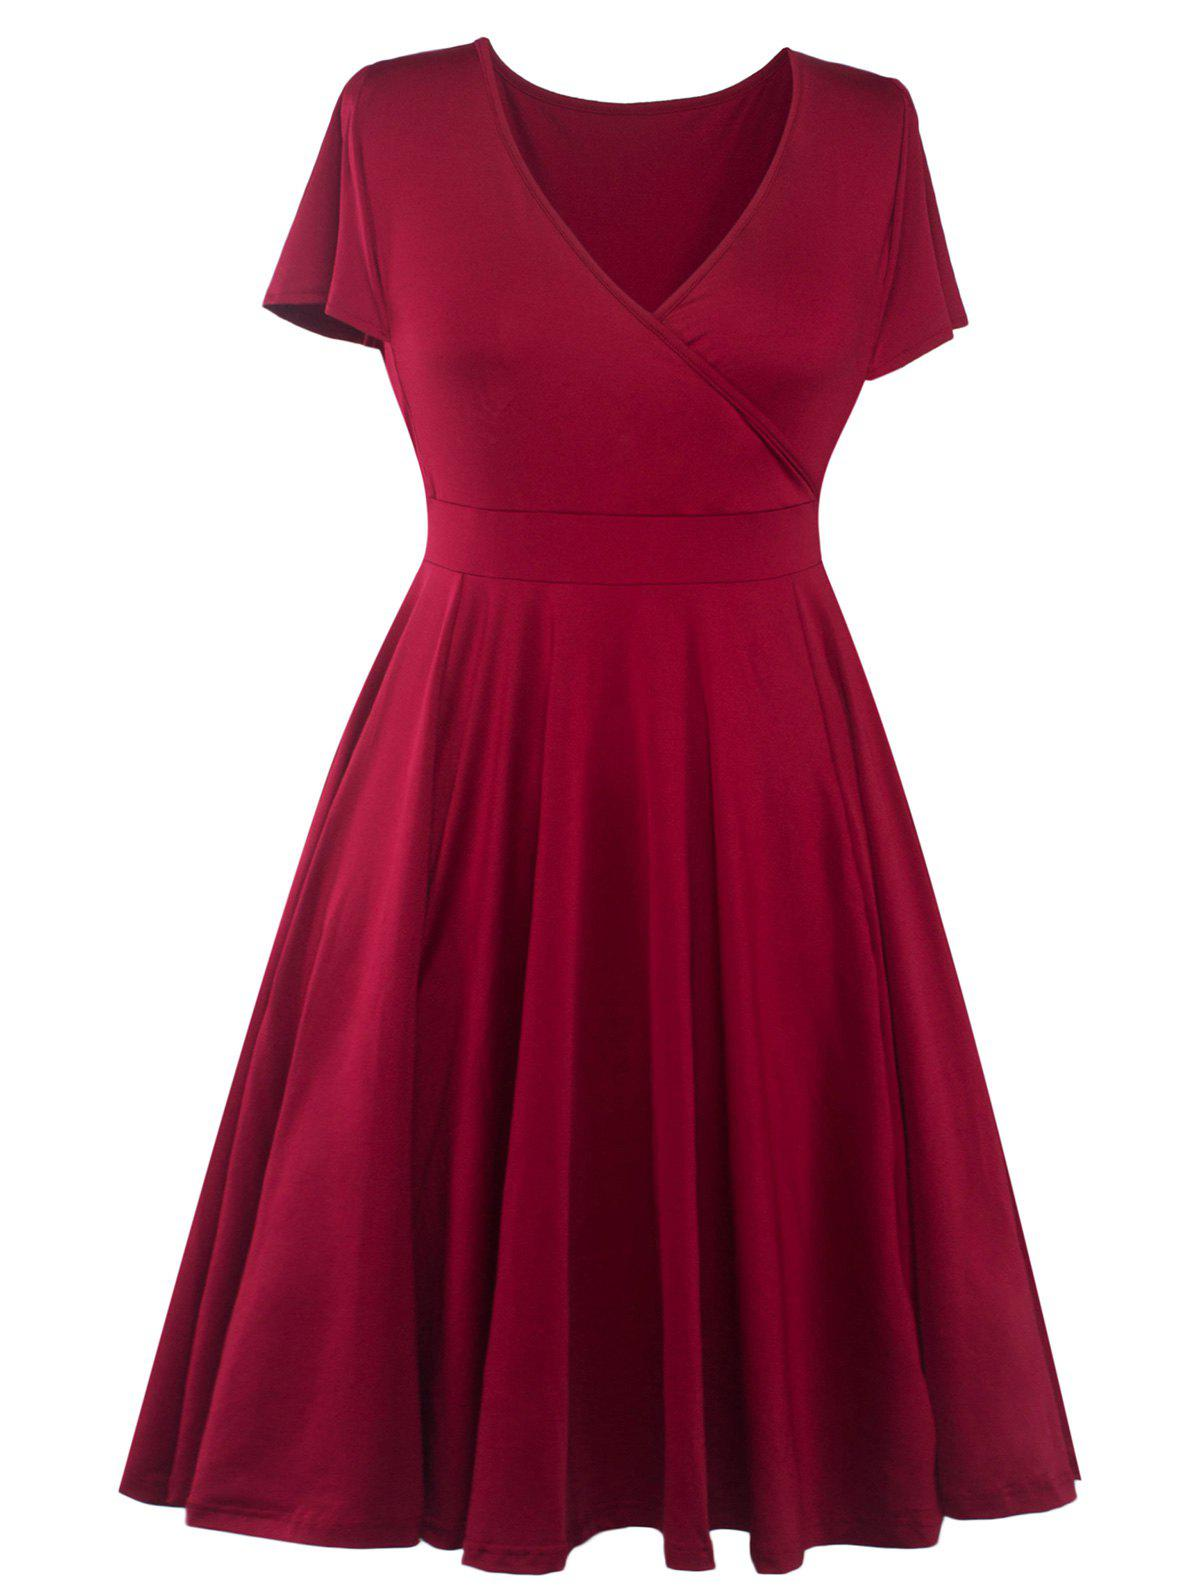 Plus Size Surplice Casual Midi A Line Dress With Short SleeveWOMEN<br><br>Size: 5XL; Color: WINE RED; Style: Casual; Material: Polyester; Silhouette: A-Line; Dresses Length: Mid-Calf; Neckline: V-Neck; Sleeve Length: Short Sleeves; Pattern Type: Solid; With Belt: No; Season: Summer; Weight: 0.420kg; Package Contents: 1 x Dress;